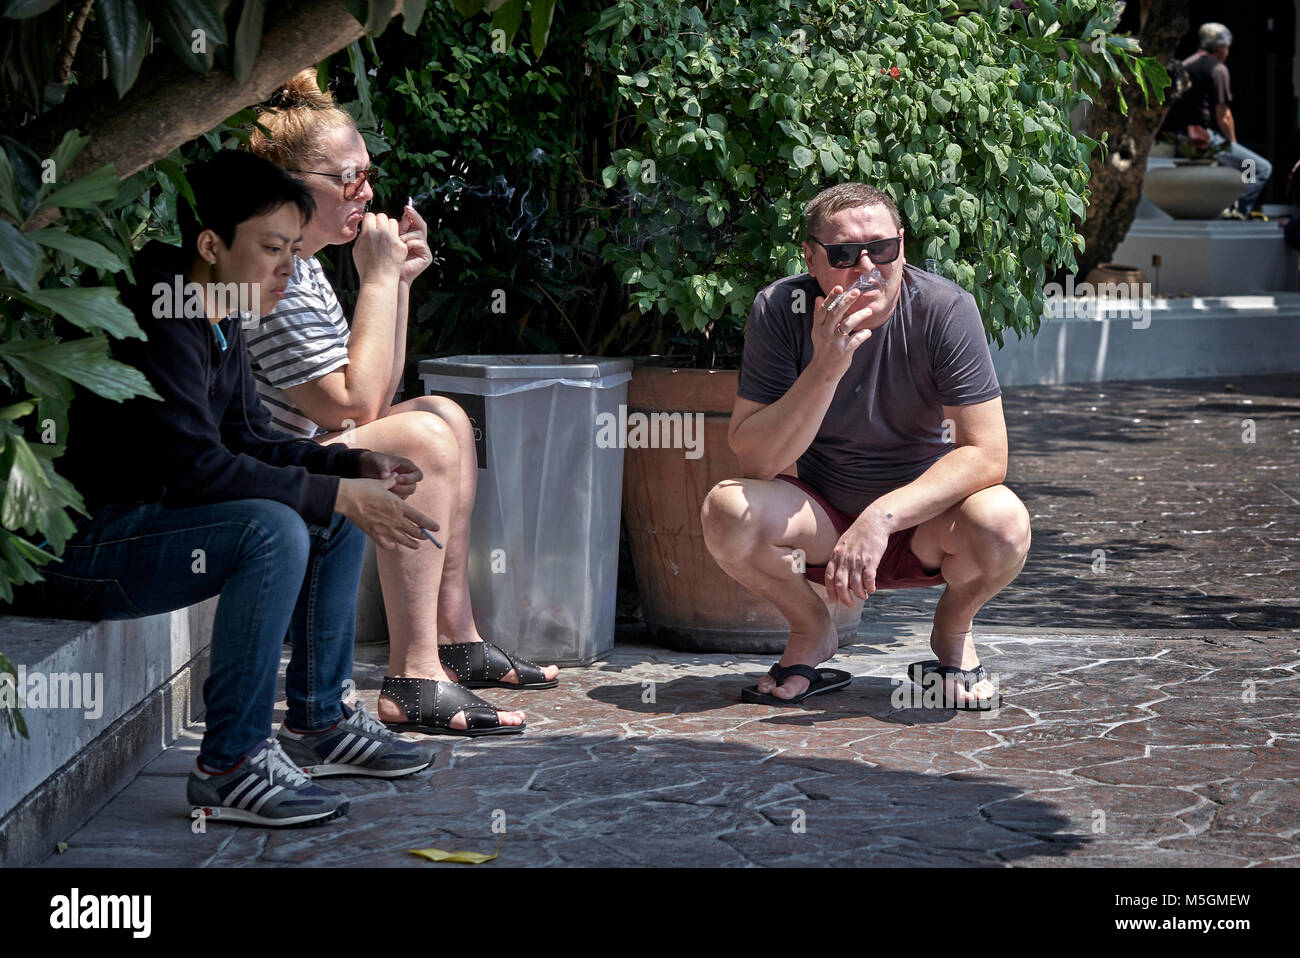 Smokers. People smoking cigarettes in the outdoor smoking area Stock Photo